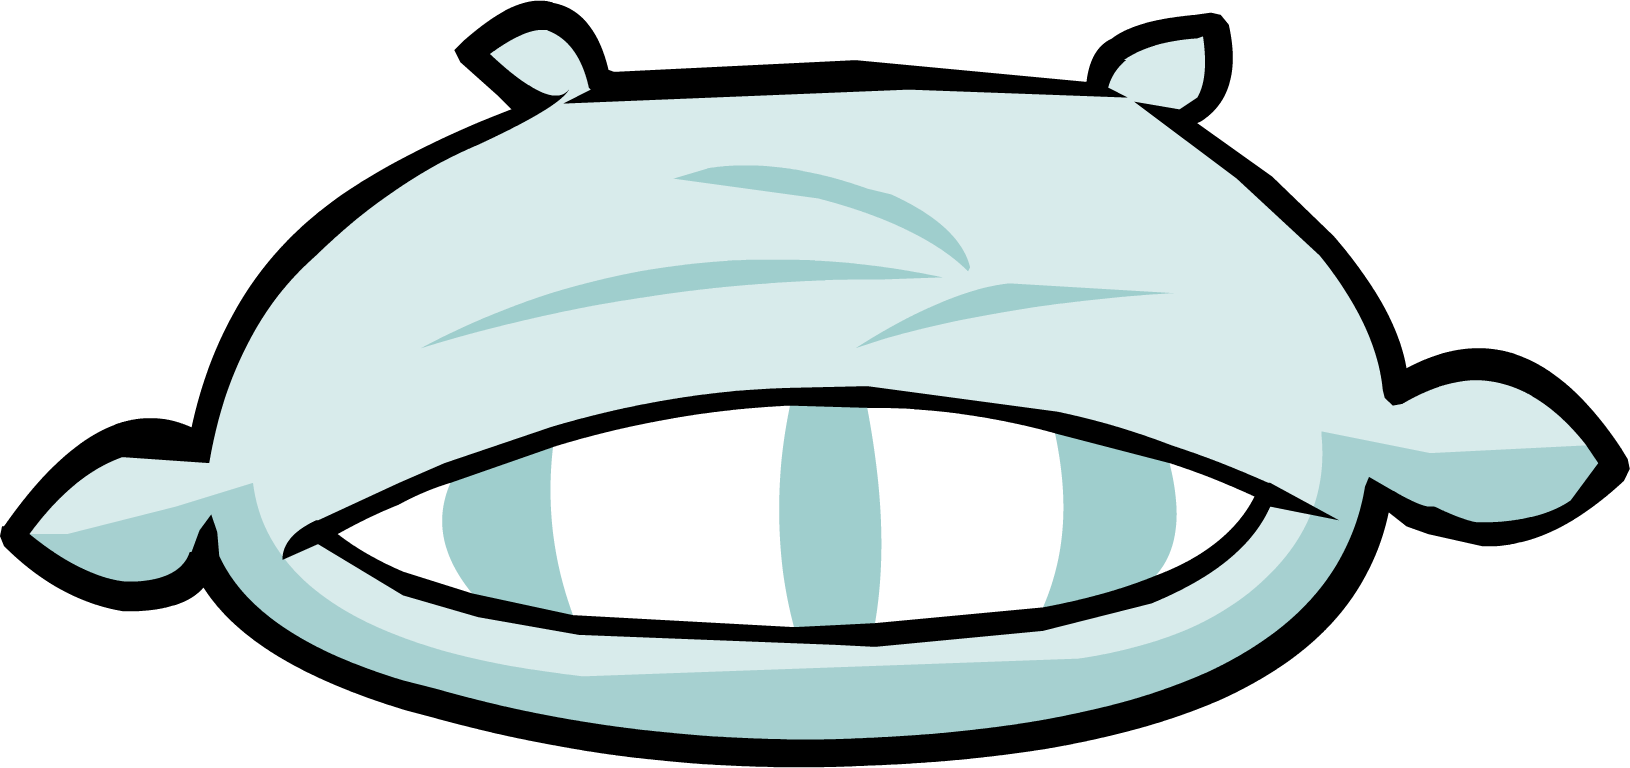 Pillow png clipart. Image club penguin wiki